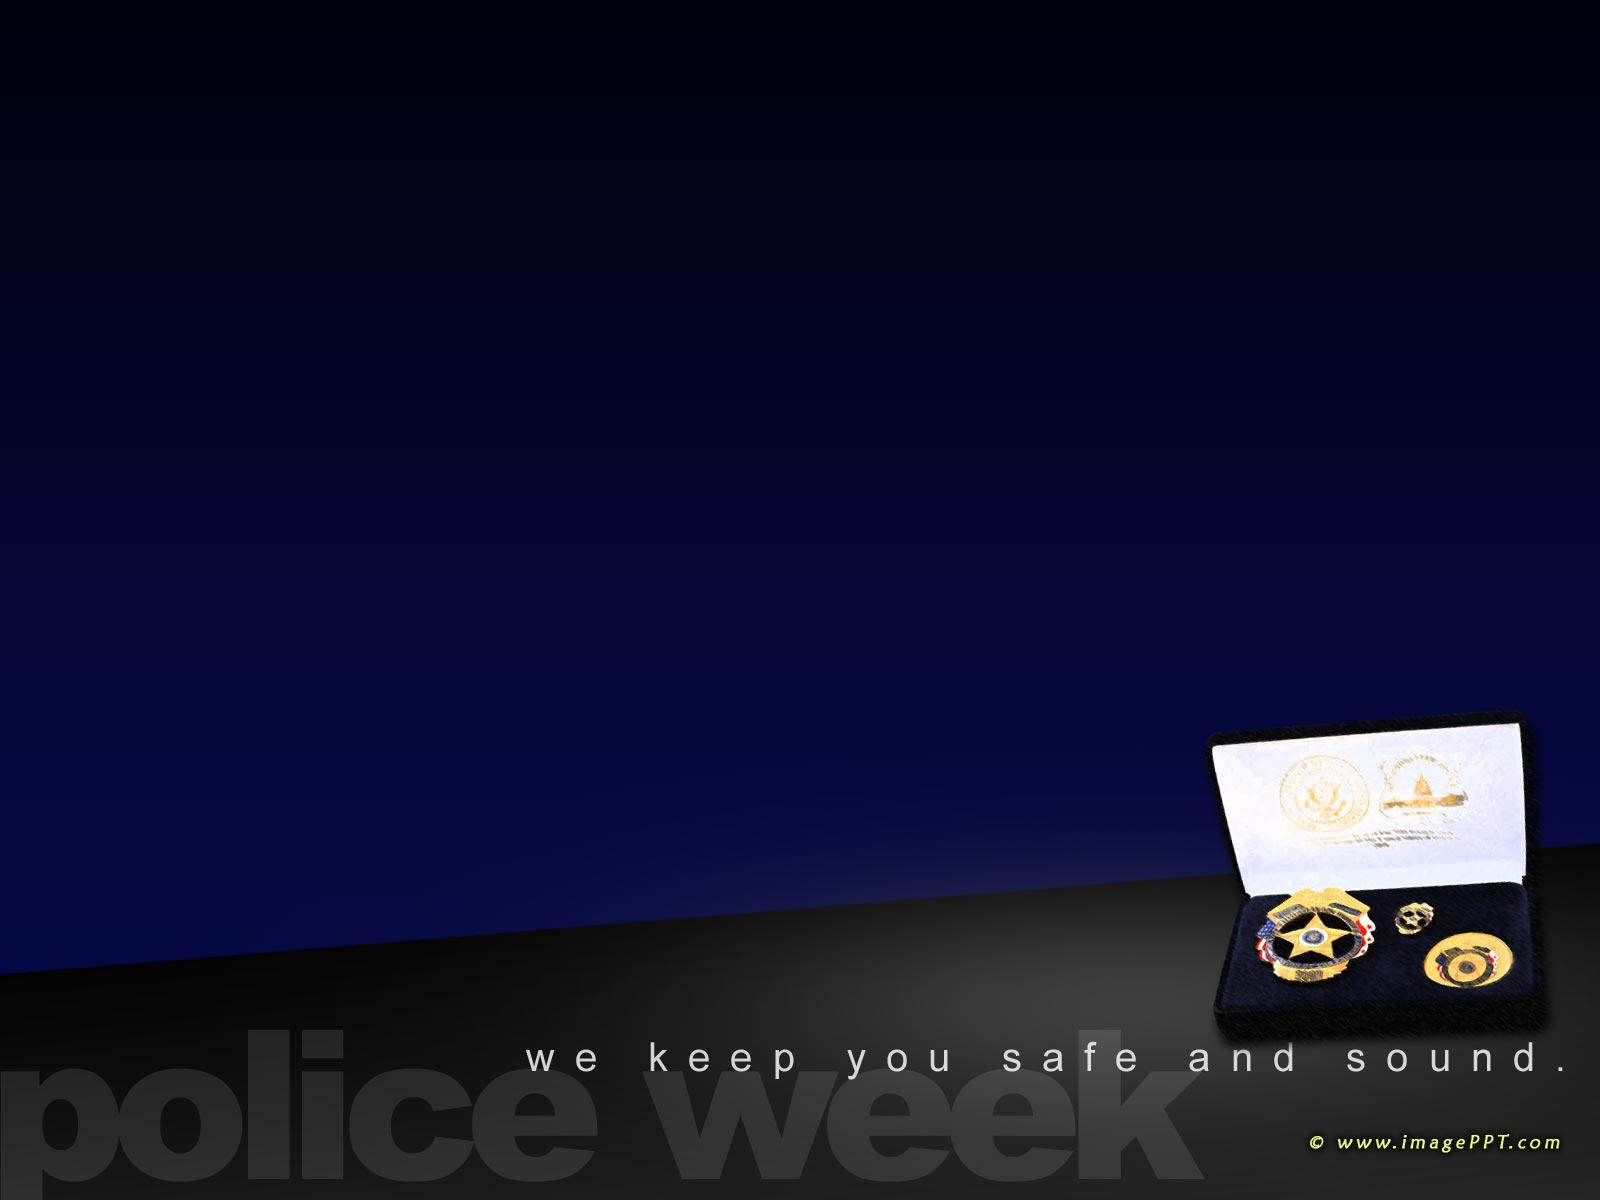 police theme wallpaper wallpapersafari